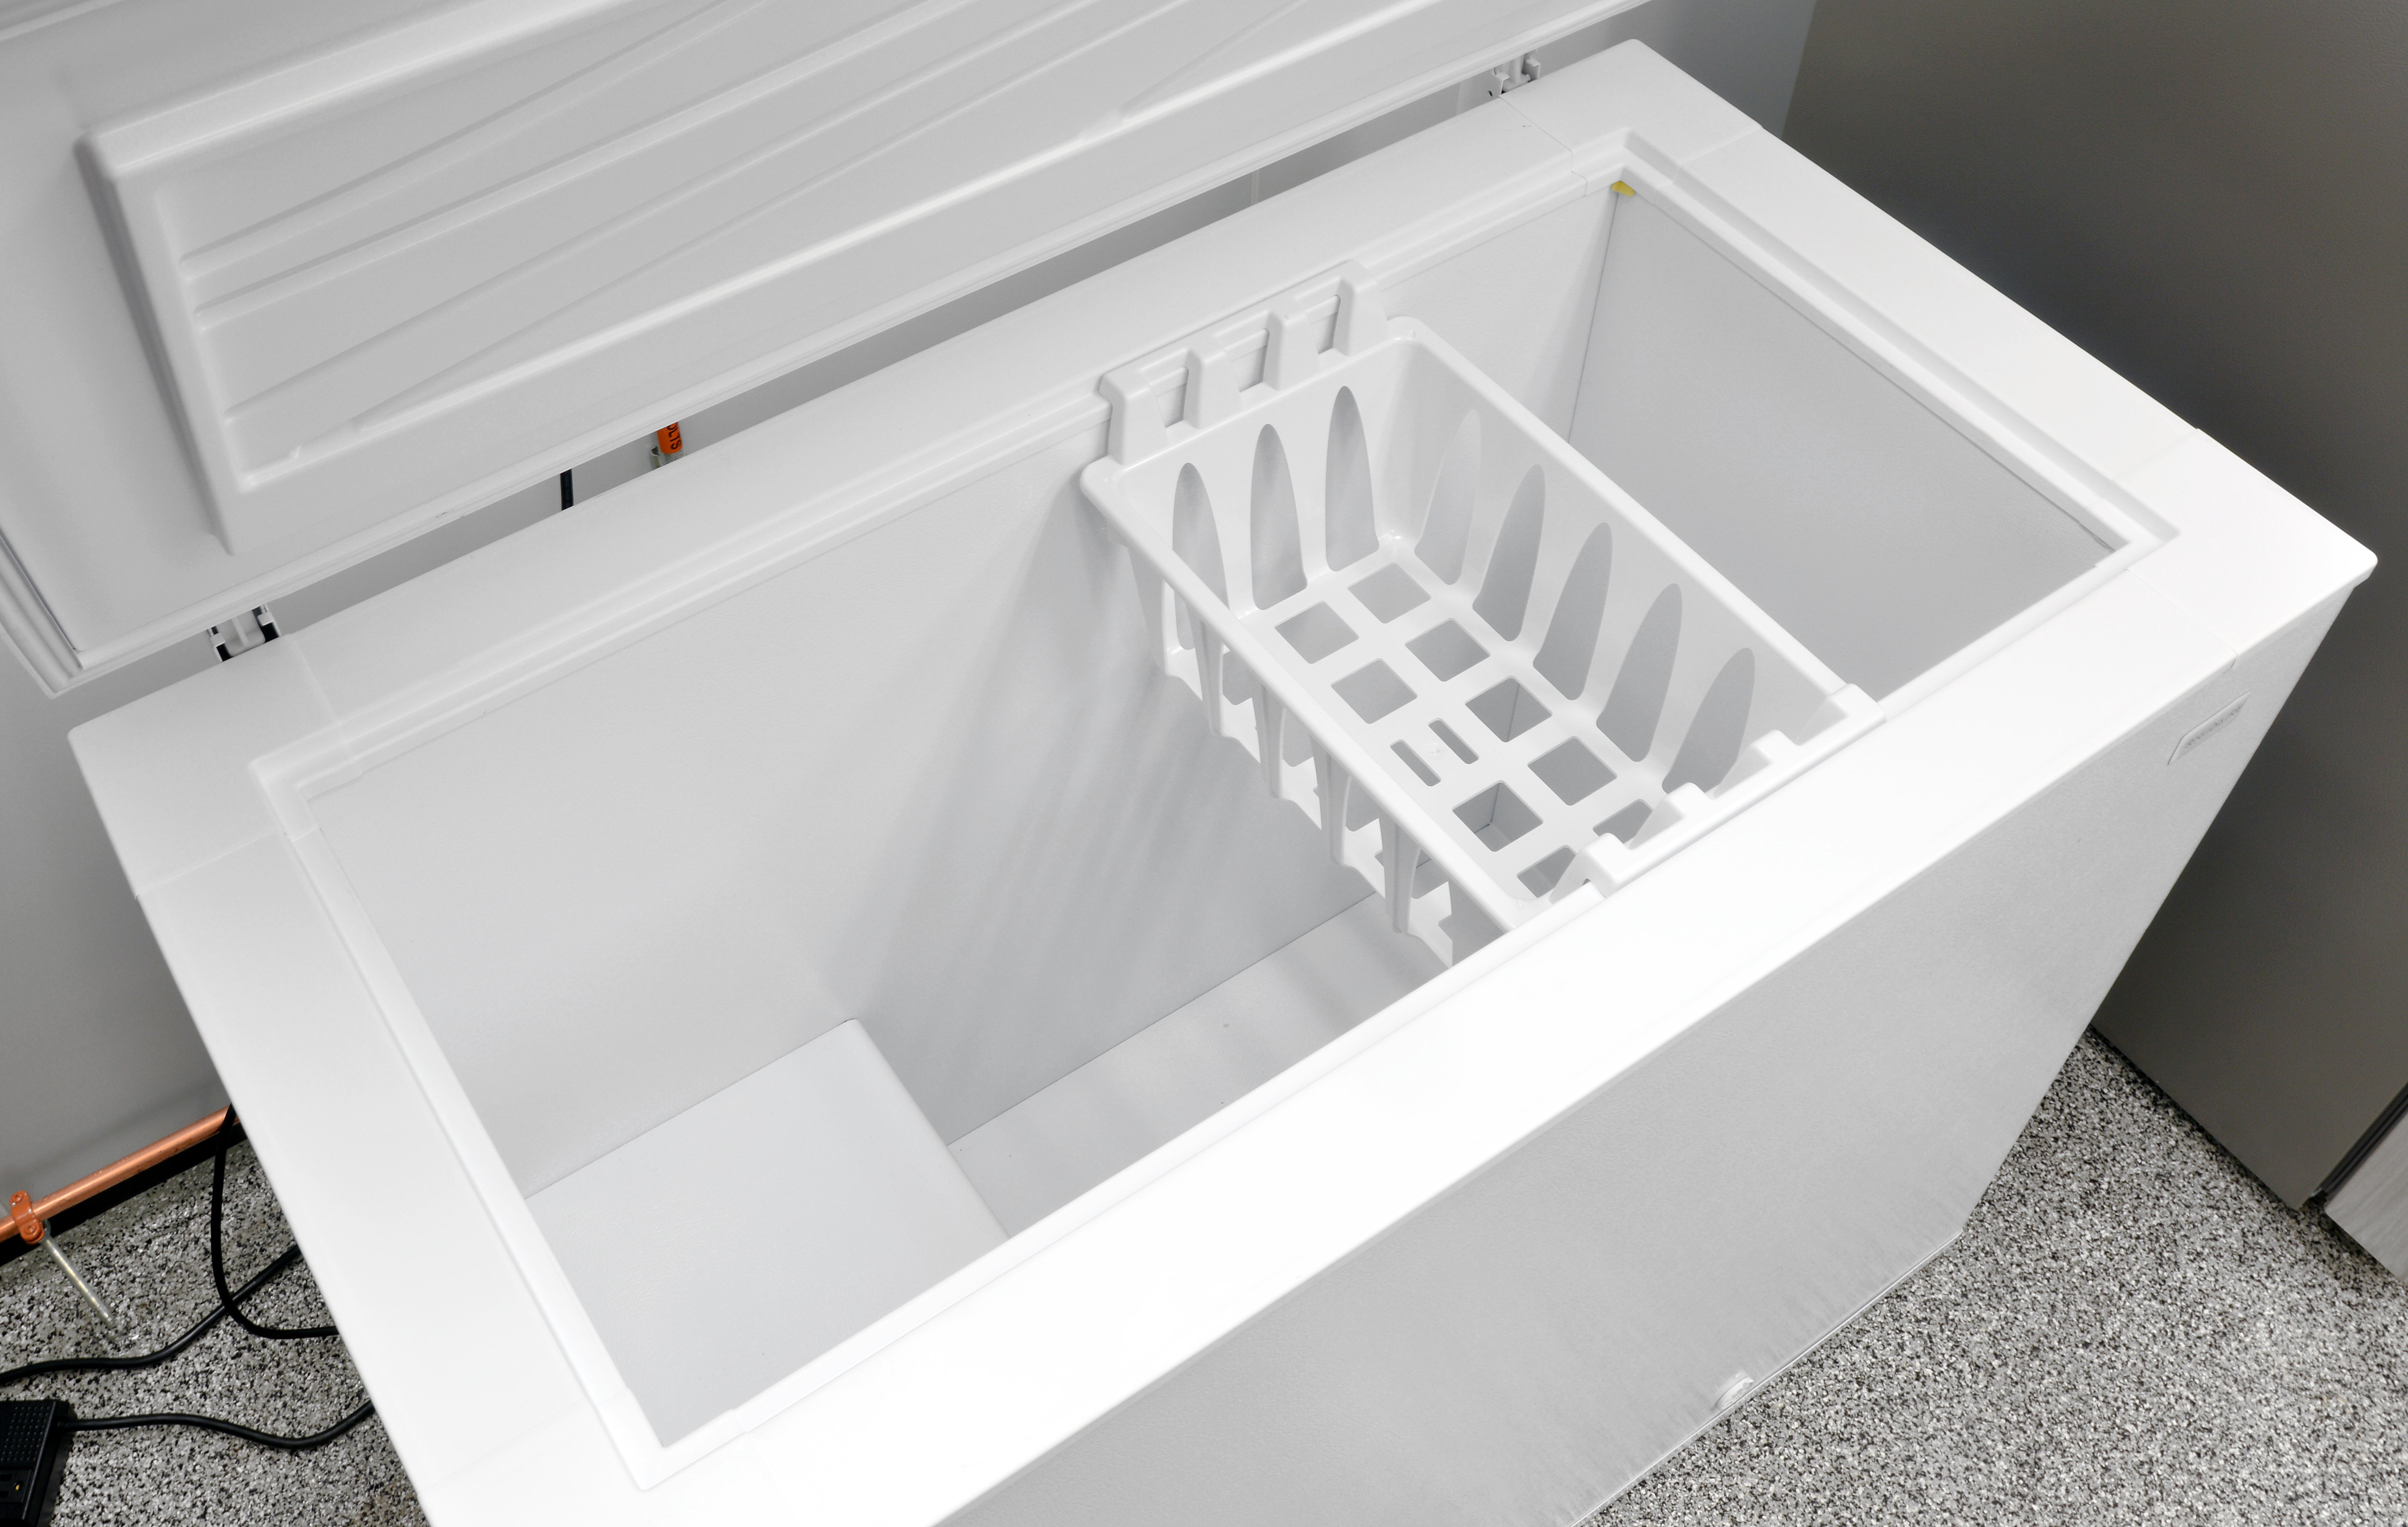 Inside, all you get is one sliding bucket to break up the interior of the Frigidaire FFFC09M1QW.